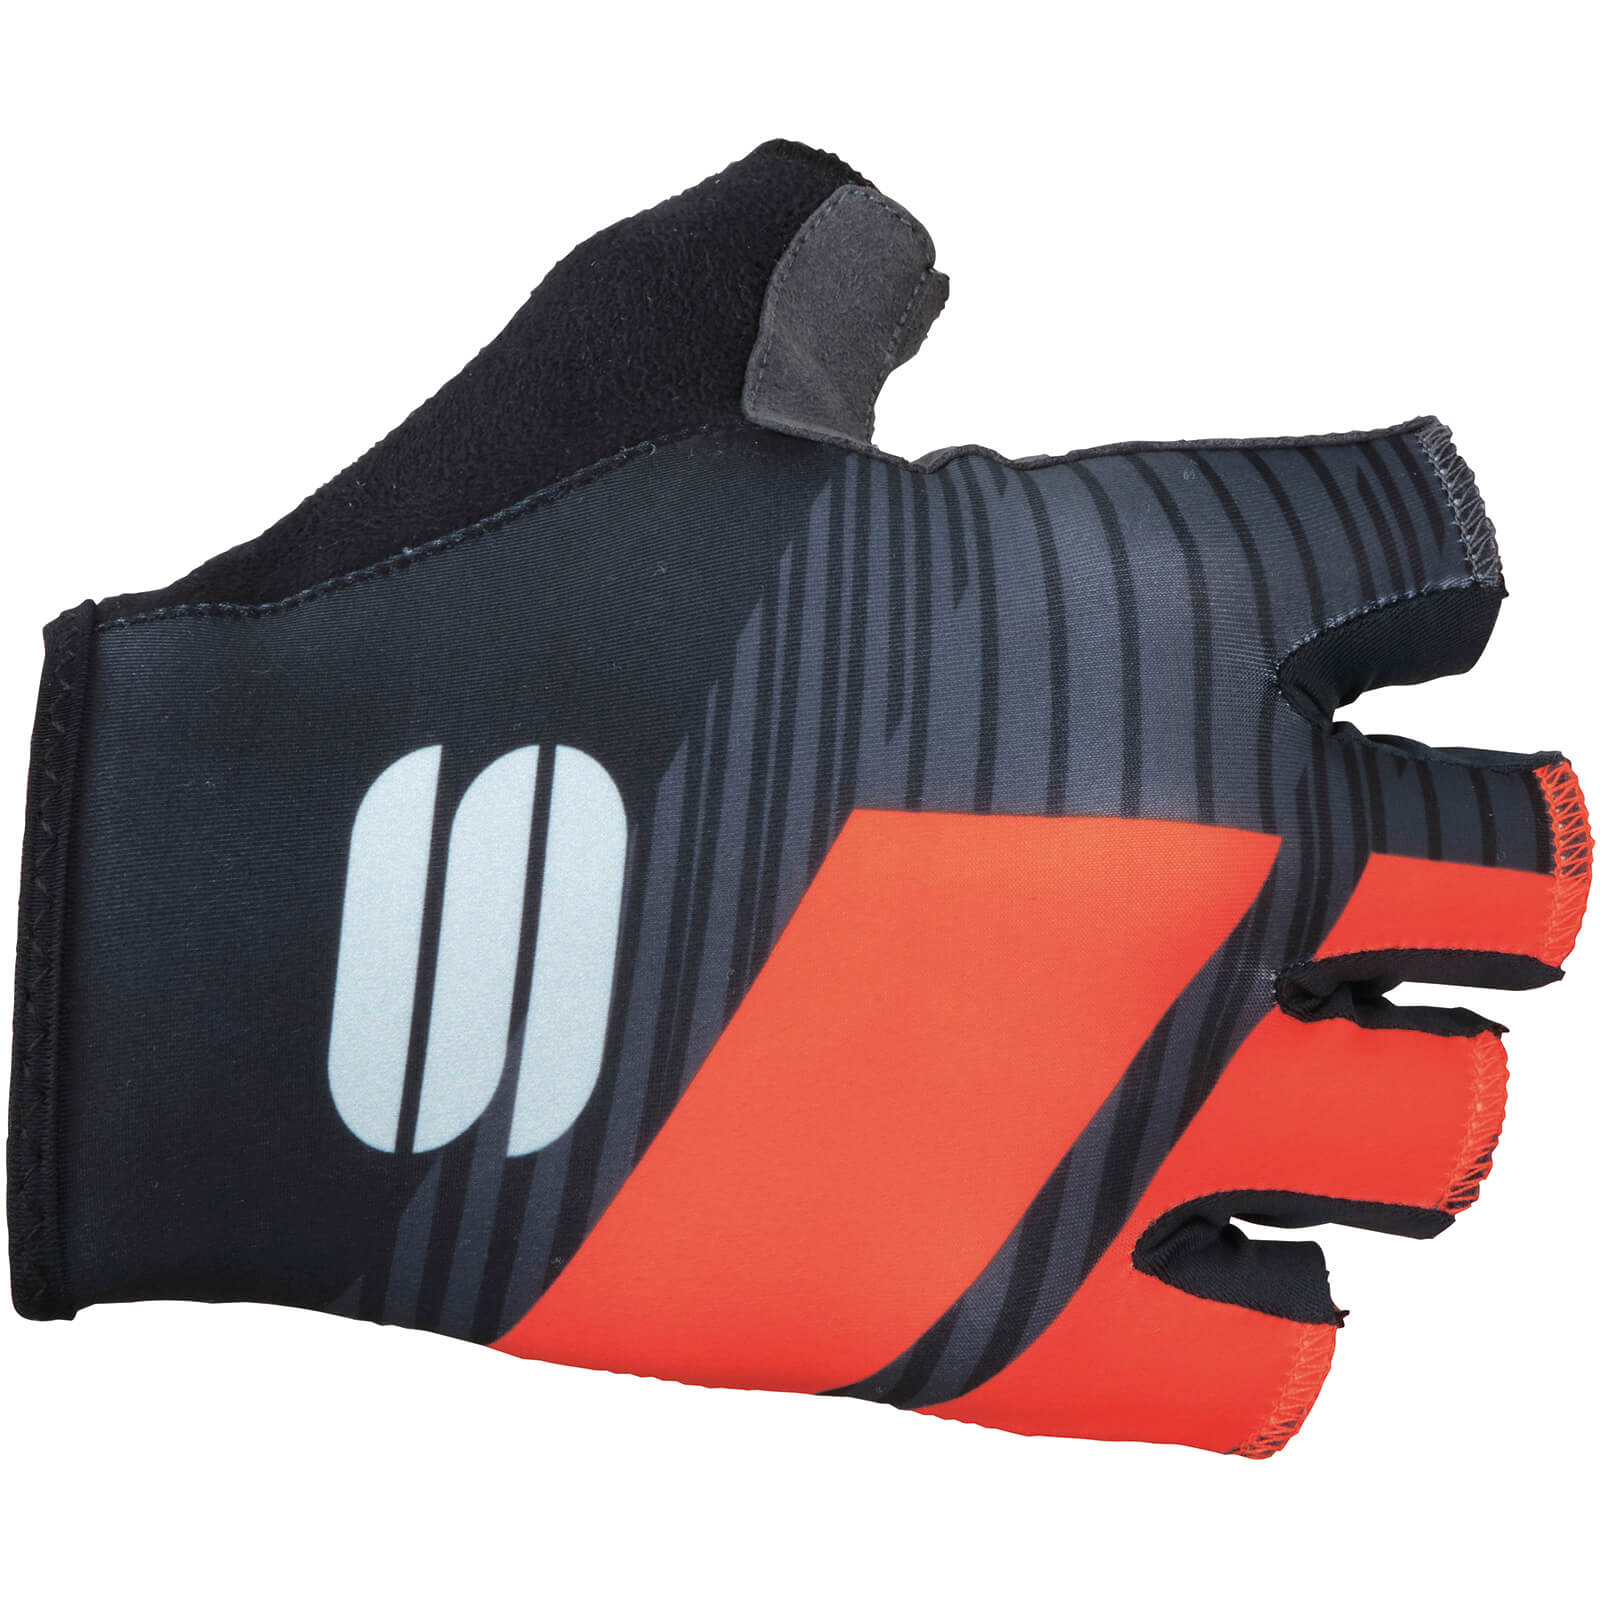 Sportful BodyFit Pro Team Gloves - Black/Coral Fluo